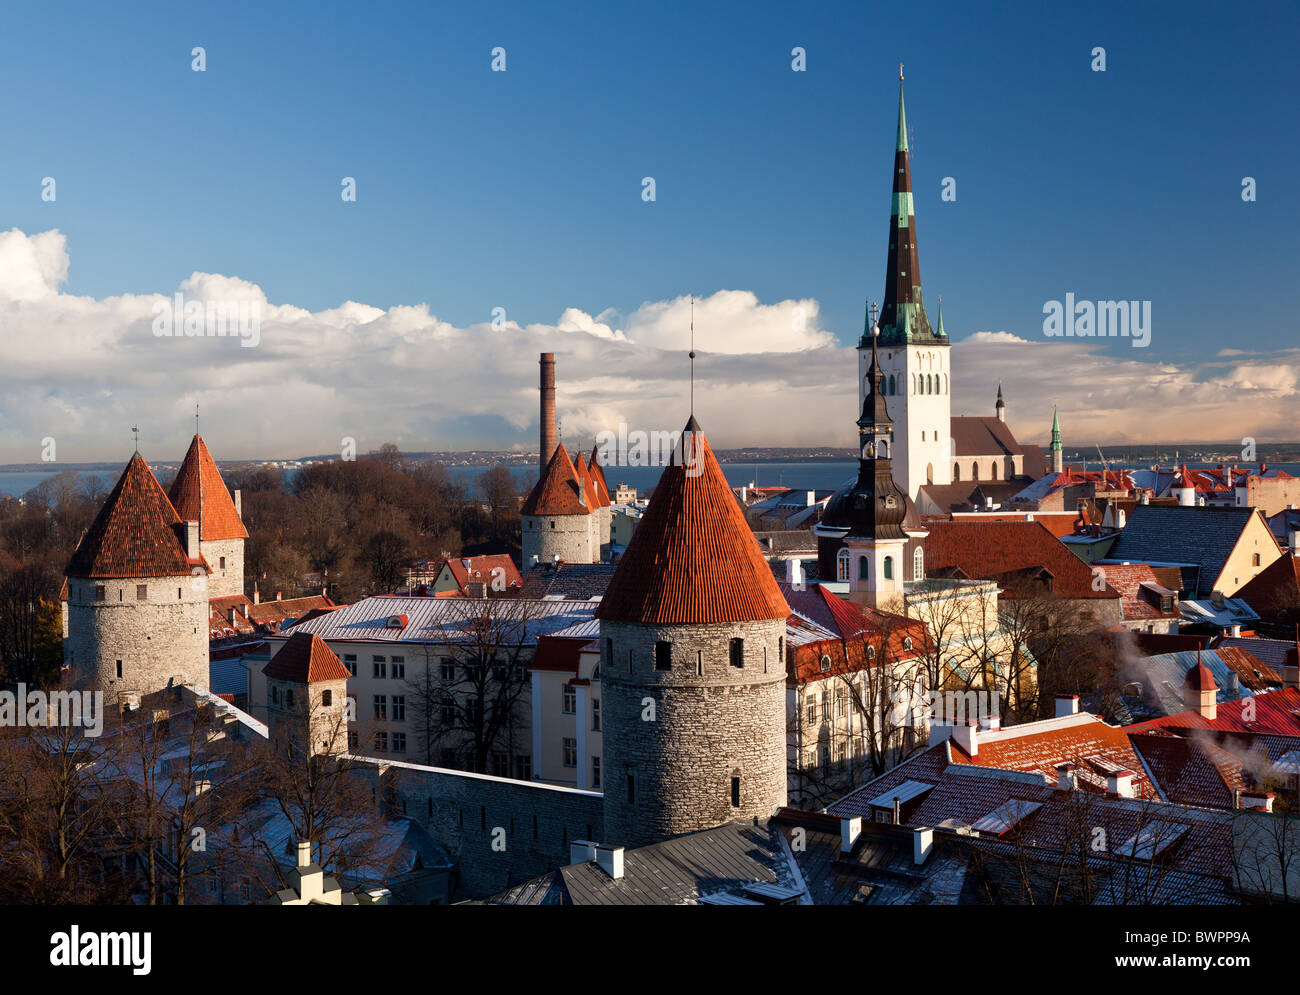 Tallinn in Estonia, Europe - Stock Image